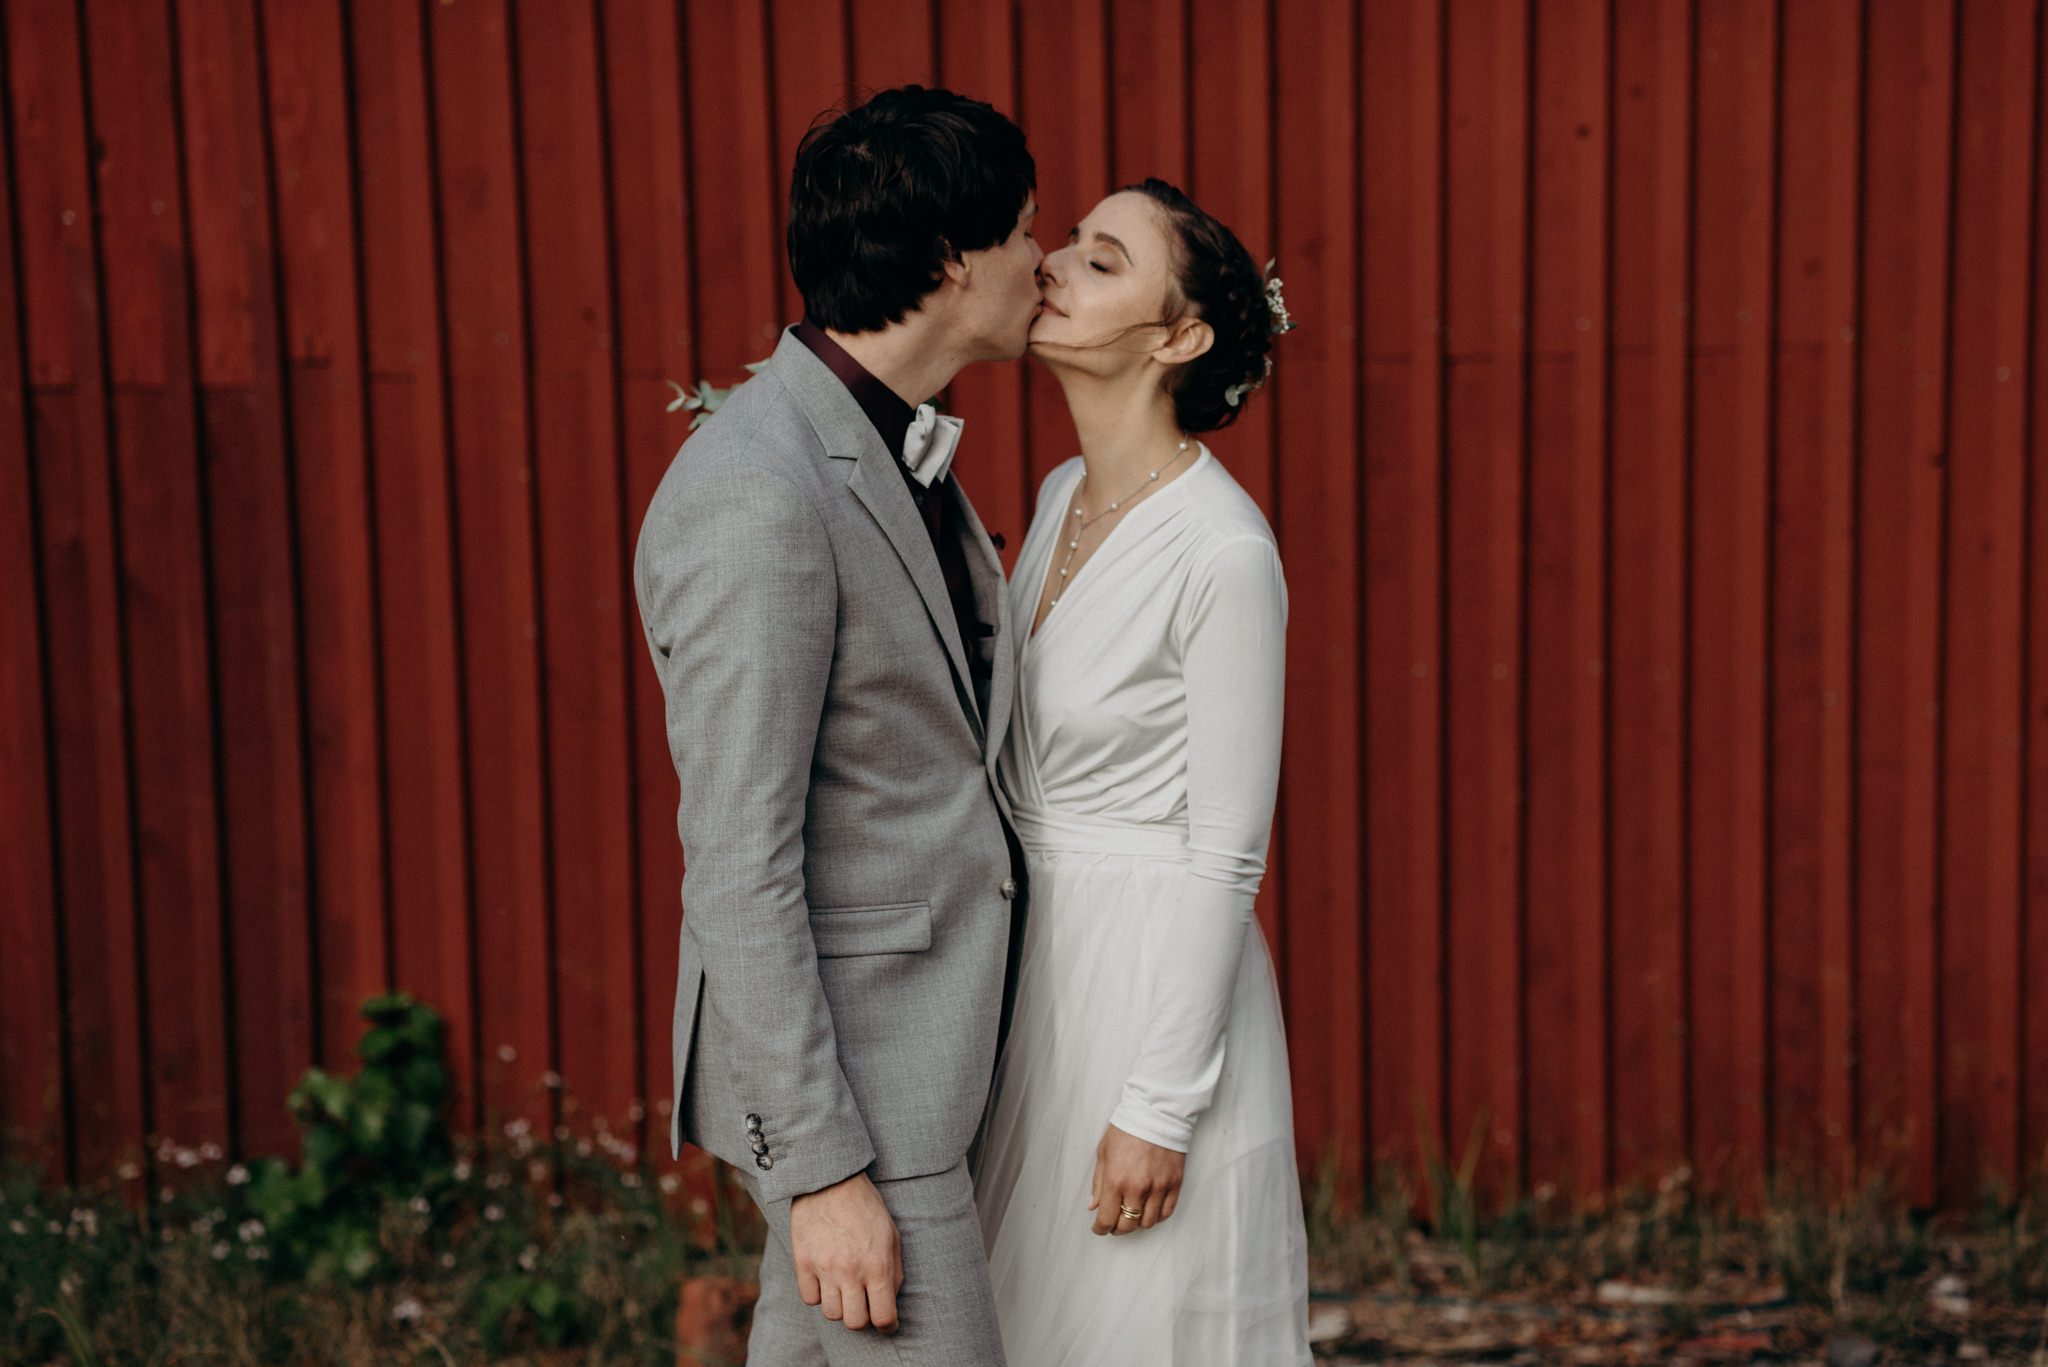 passionate kiss between bride and groom in front of red barn